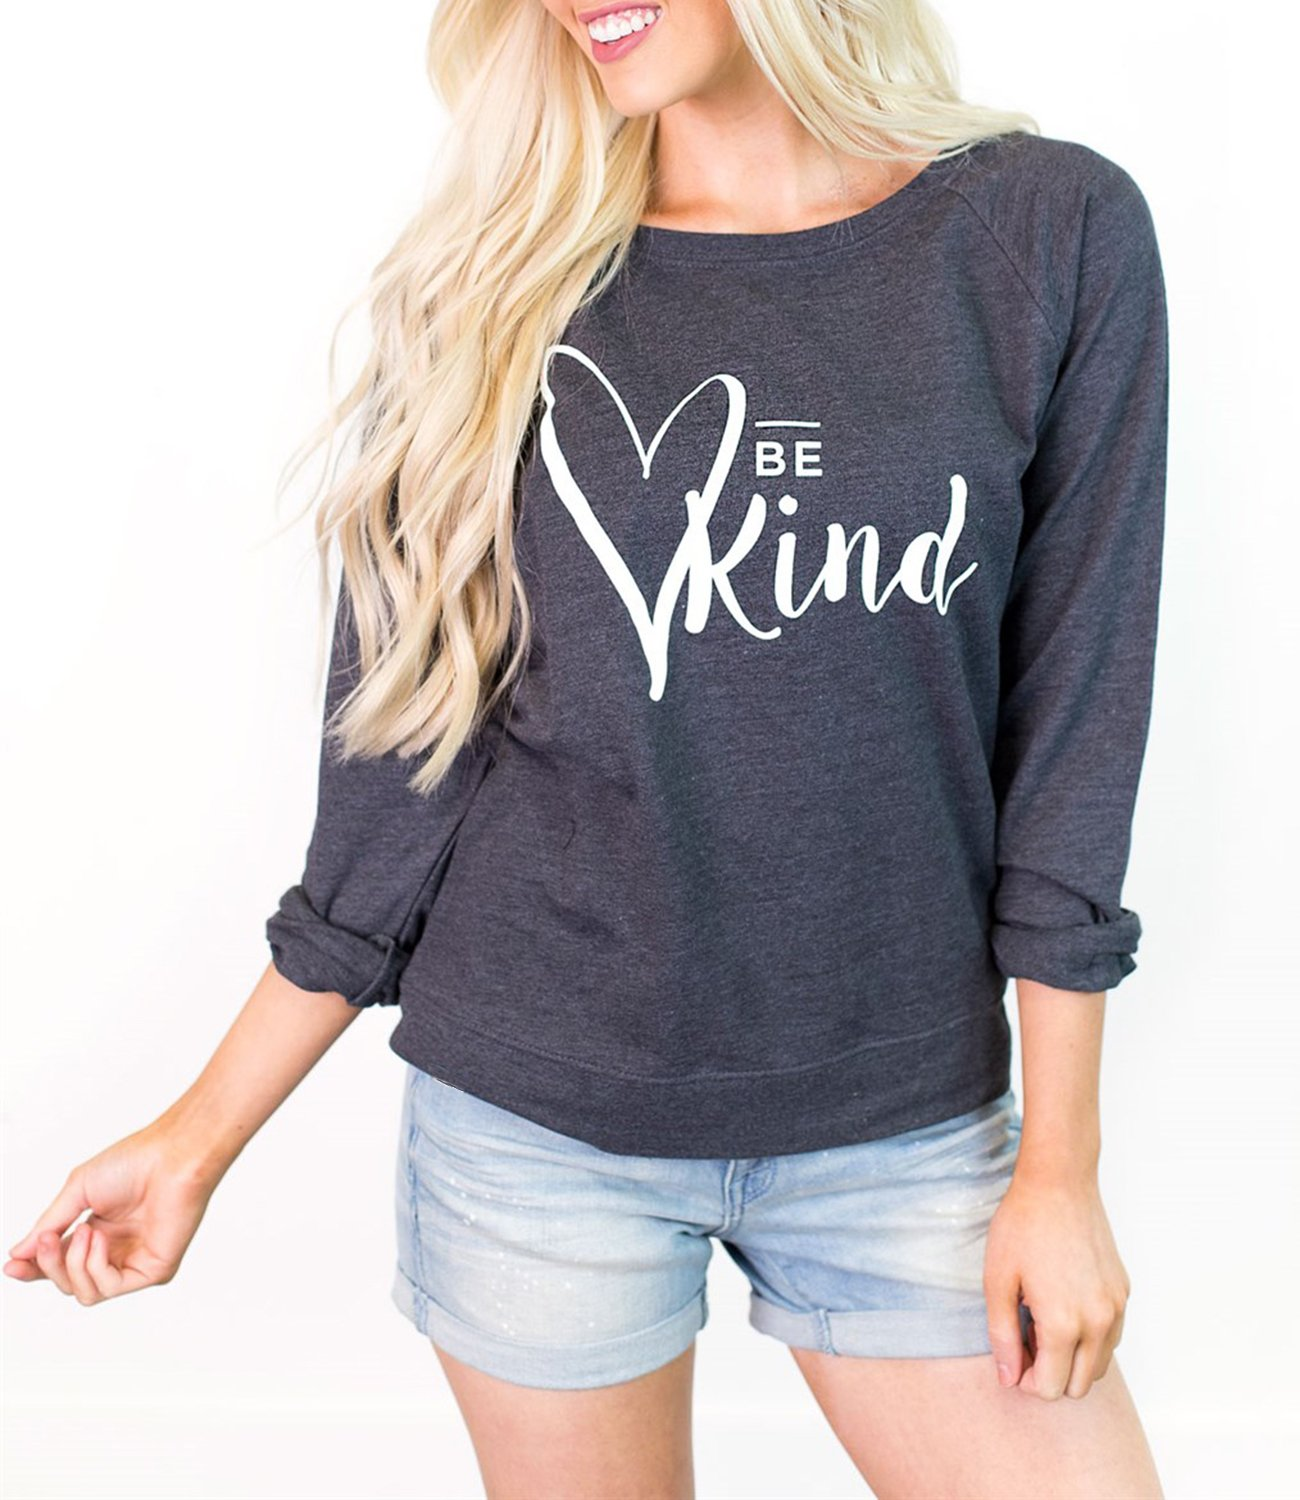 Enmeng Womens Casual Be Kind Printed Sweatshirts T Shirt Kindness Christian Pullover Tops (M, Dark Grey)